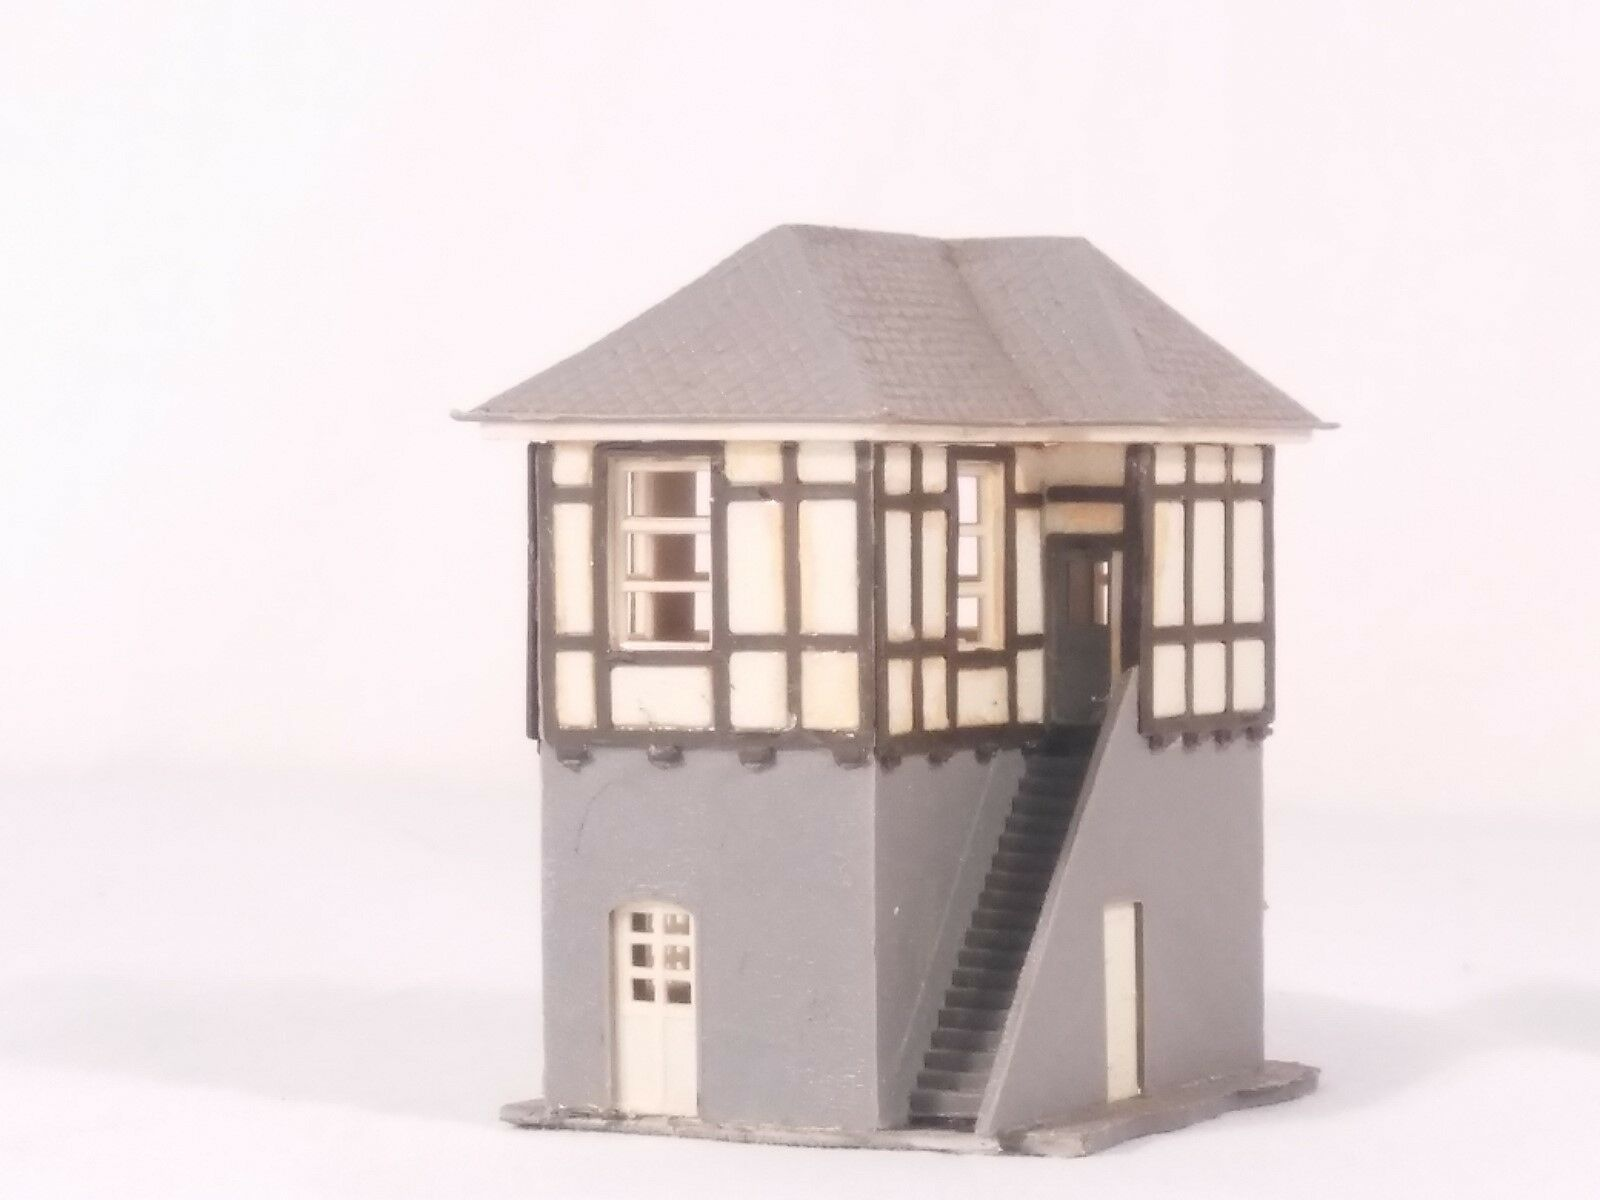 N Scale - Pola - 215 - Railroad Tower - Railroad Structures - Interlocking Tower